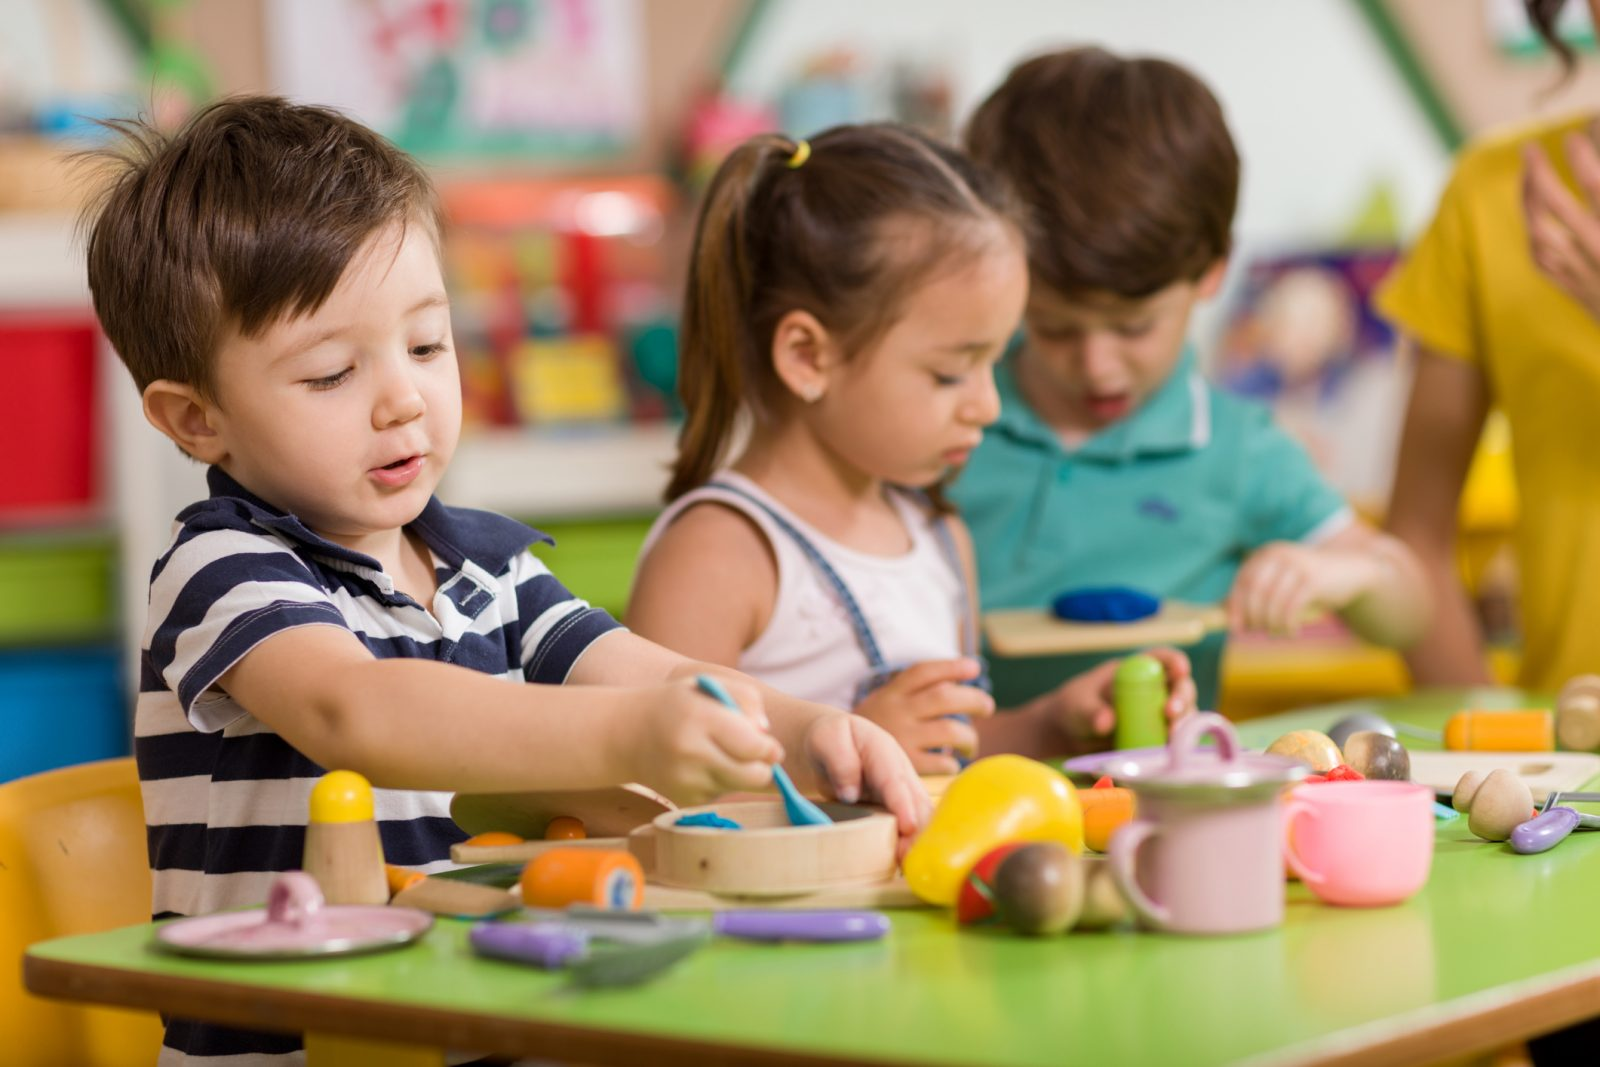 The Czech Republic has the second lowest number of available nursery schools in Europe